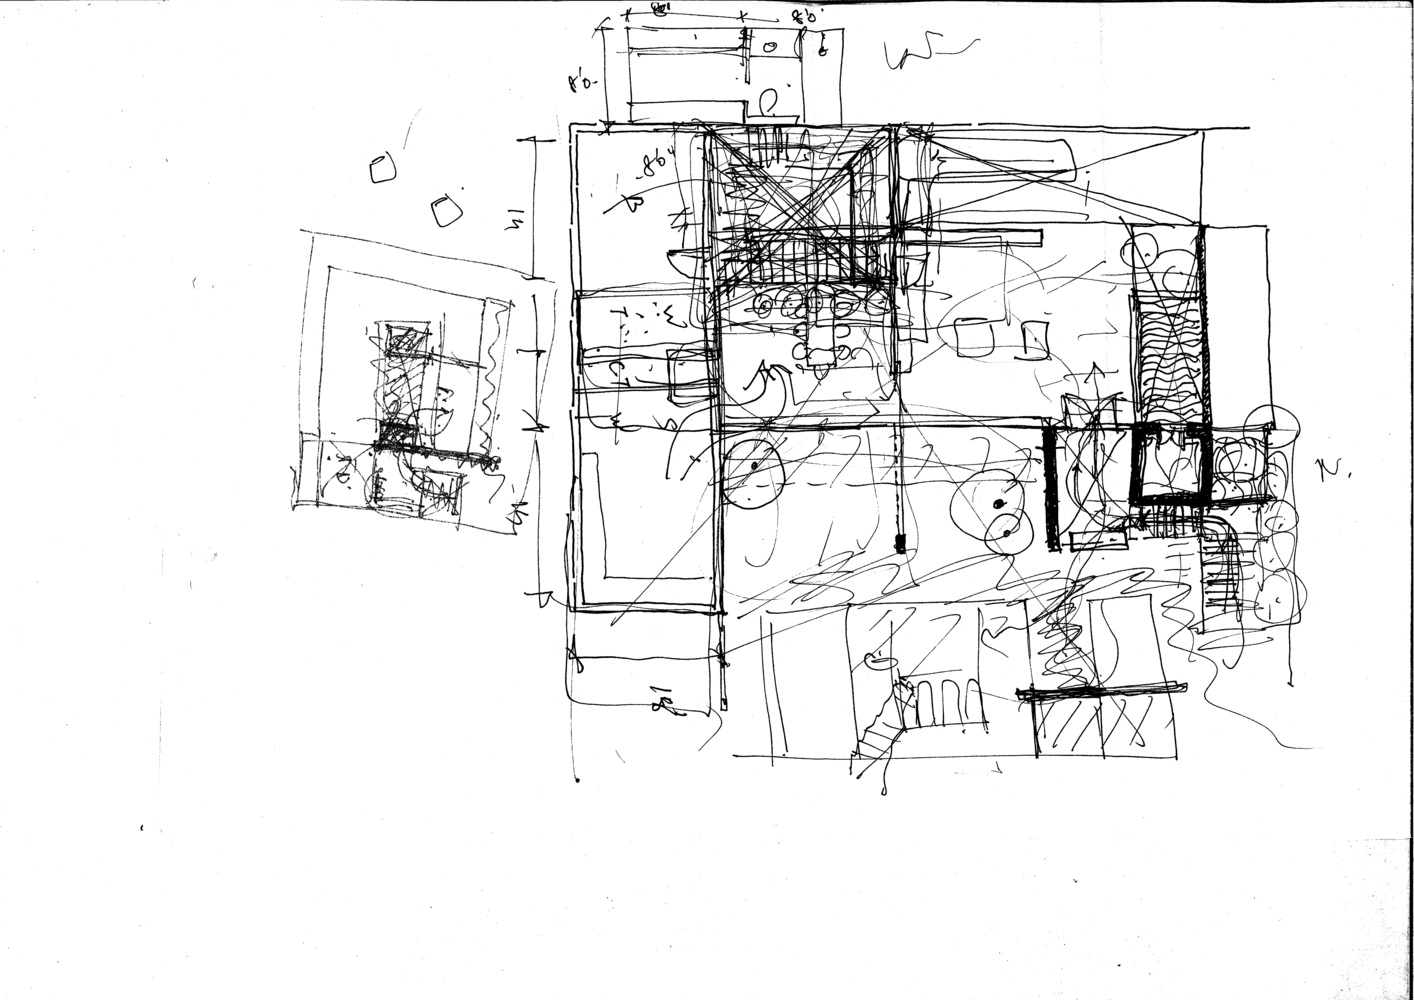 Floor plan sketch gurus floor for Floor plan sketch